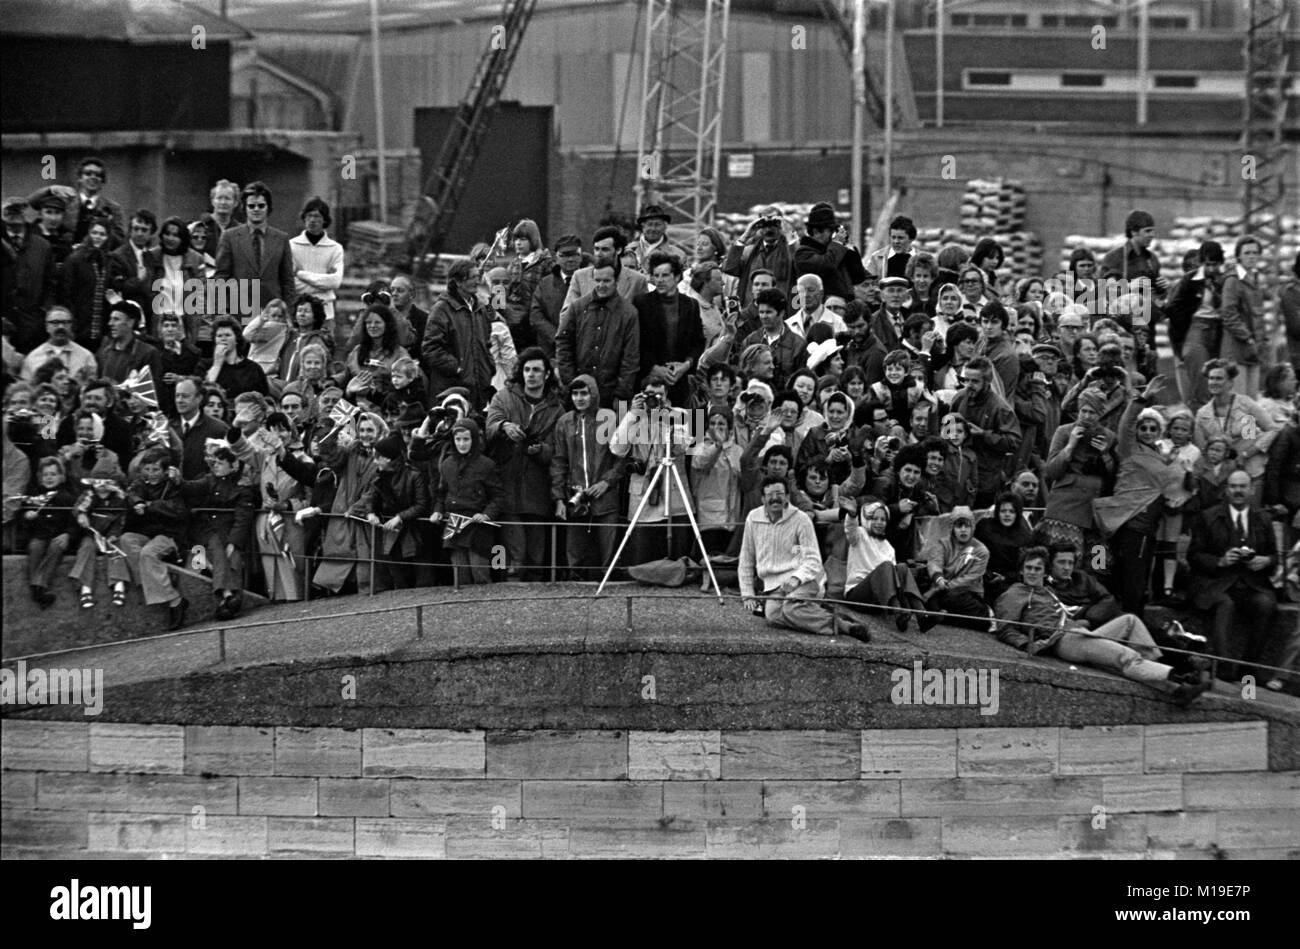 AJAXNETPHOTO. JUNE, 1977. PORTSMOUTH, ENGLAND. - CROWDED TOWER - KING HENRY VIII ROUND TOWER AT THE HARBOUR ENTRANCE - Stock Image